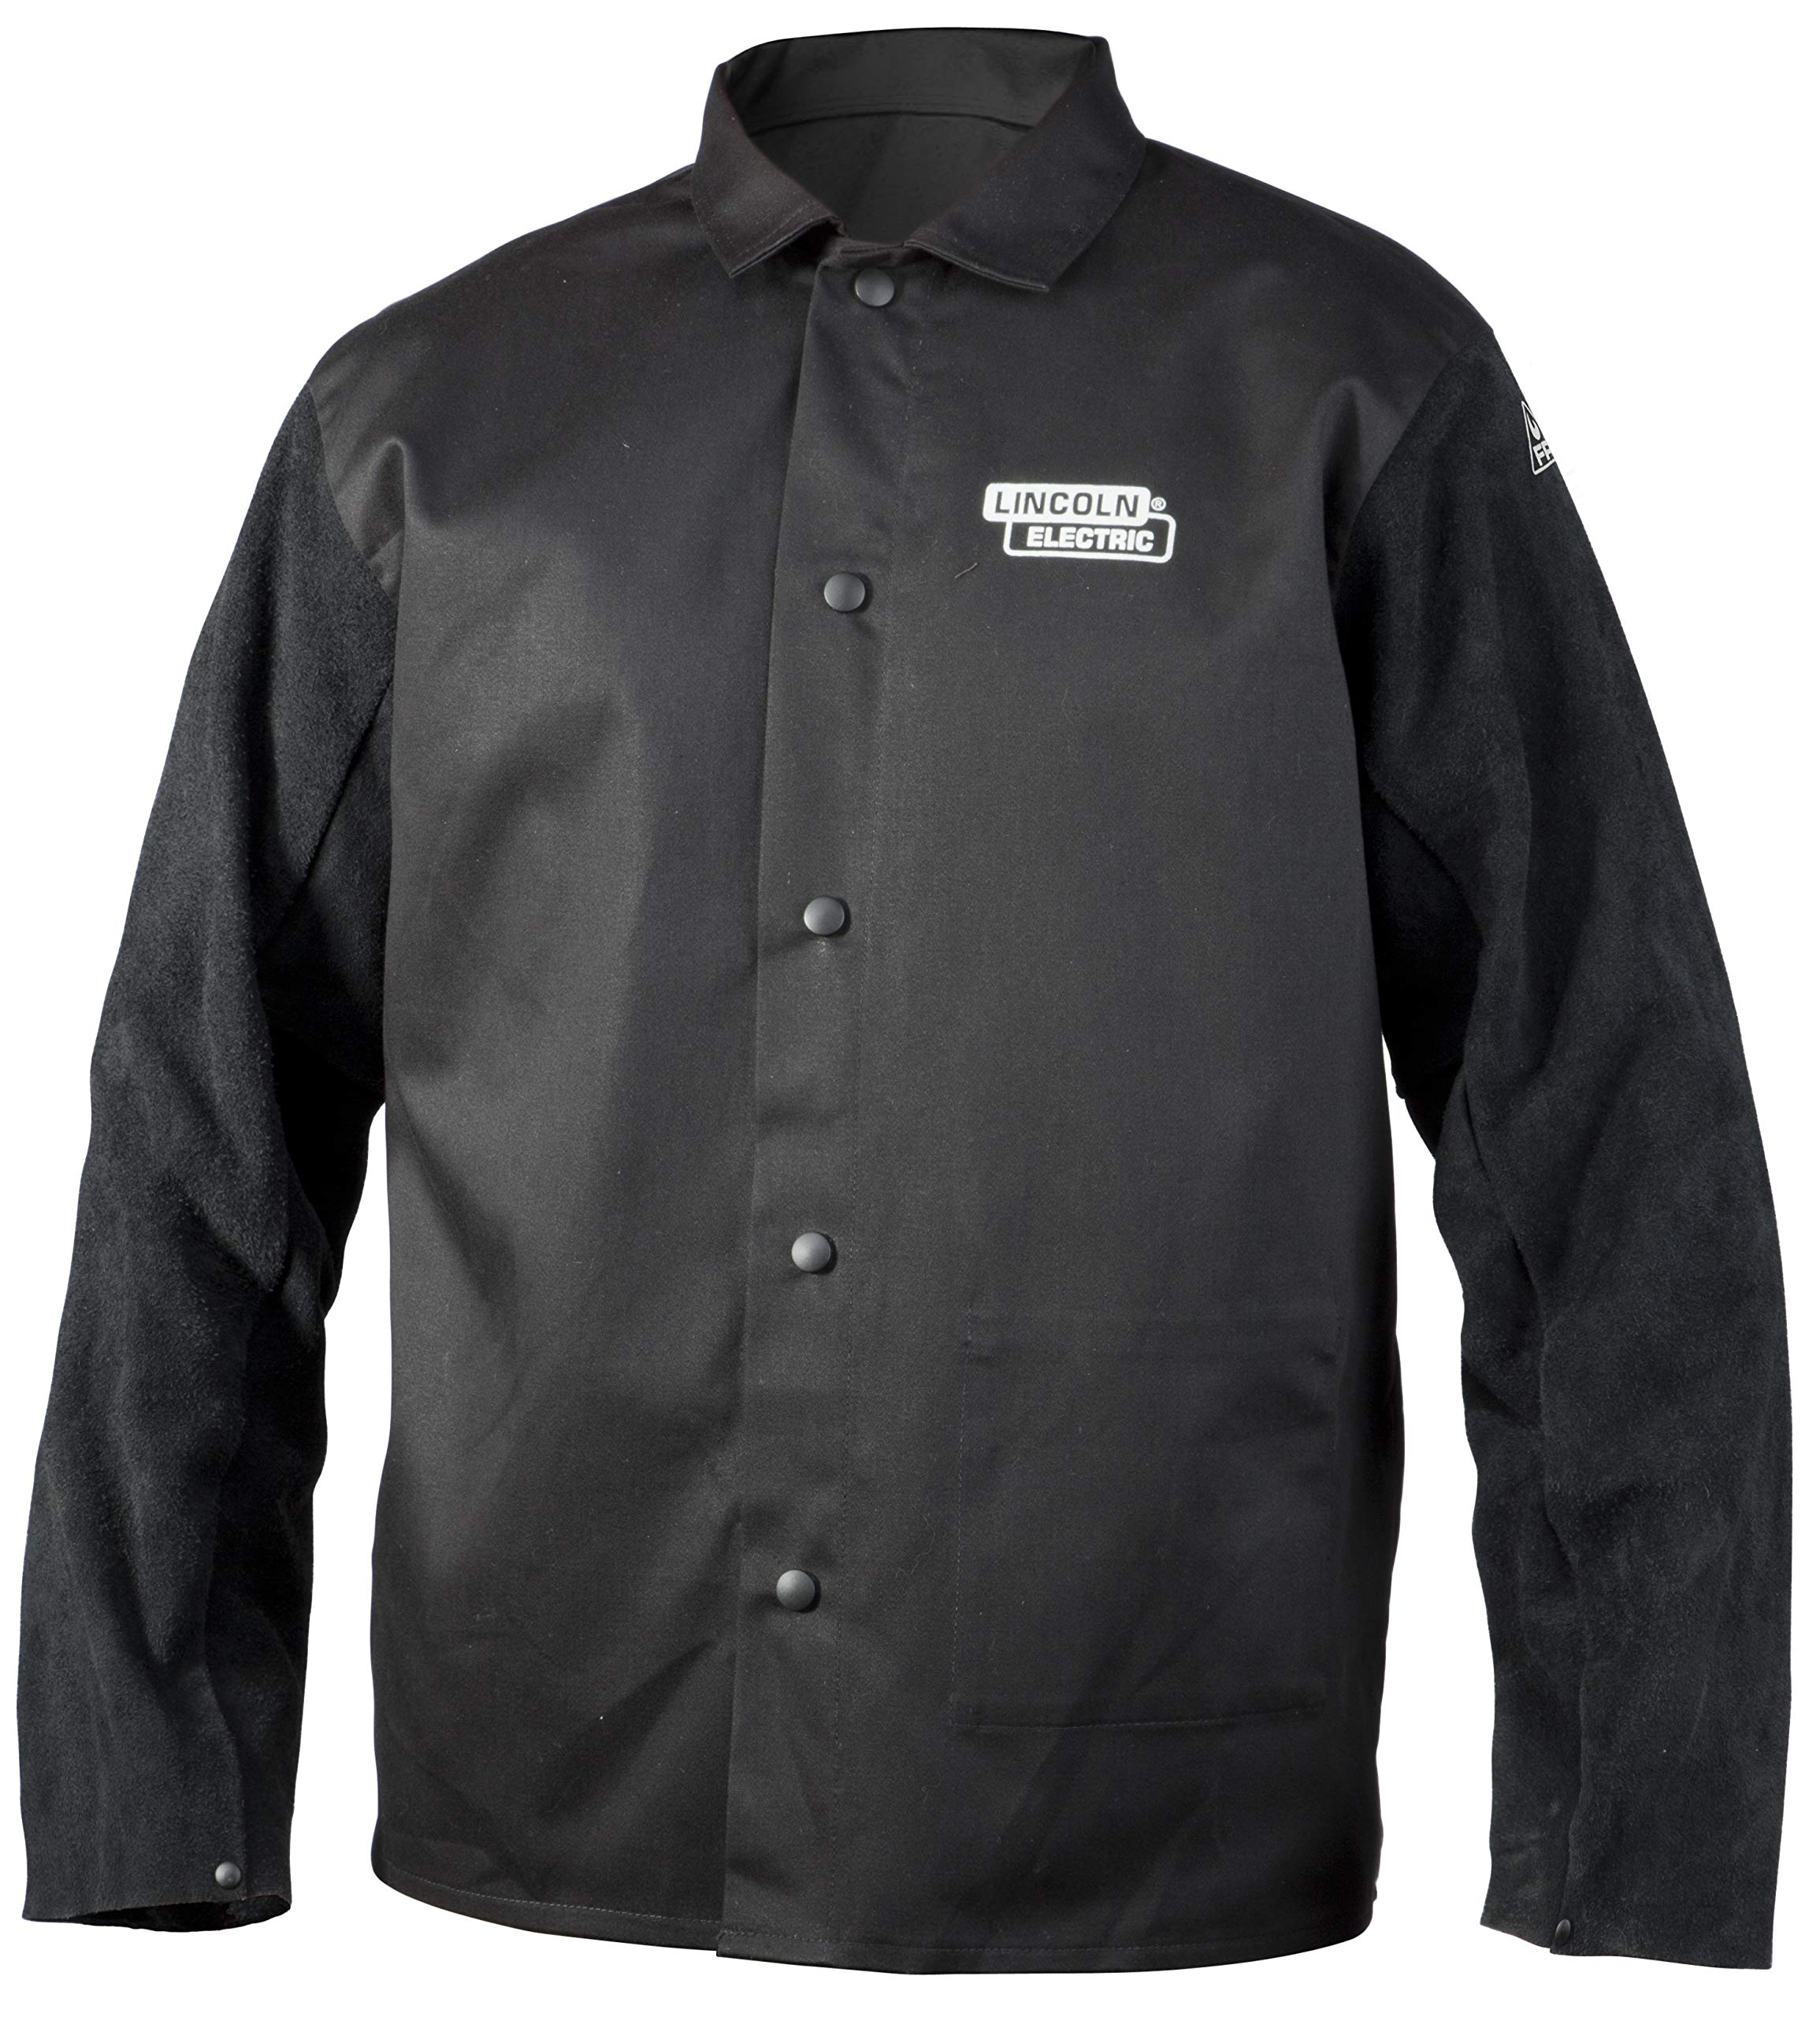 Lincoln Electric Split Leather Sleeved Welding Jacket | Premium Flame Resistant Cotton Body | Black | 2XL | K3106-2XL by Lincoln Electric